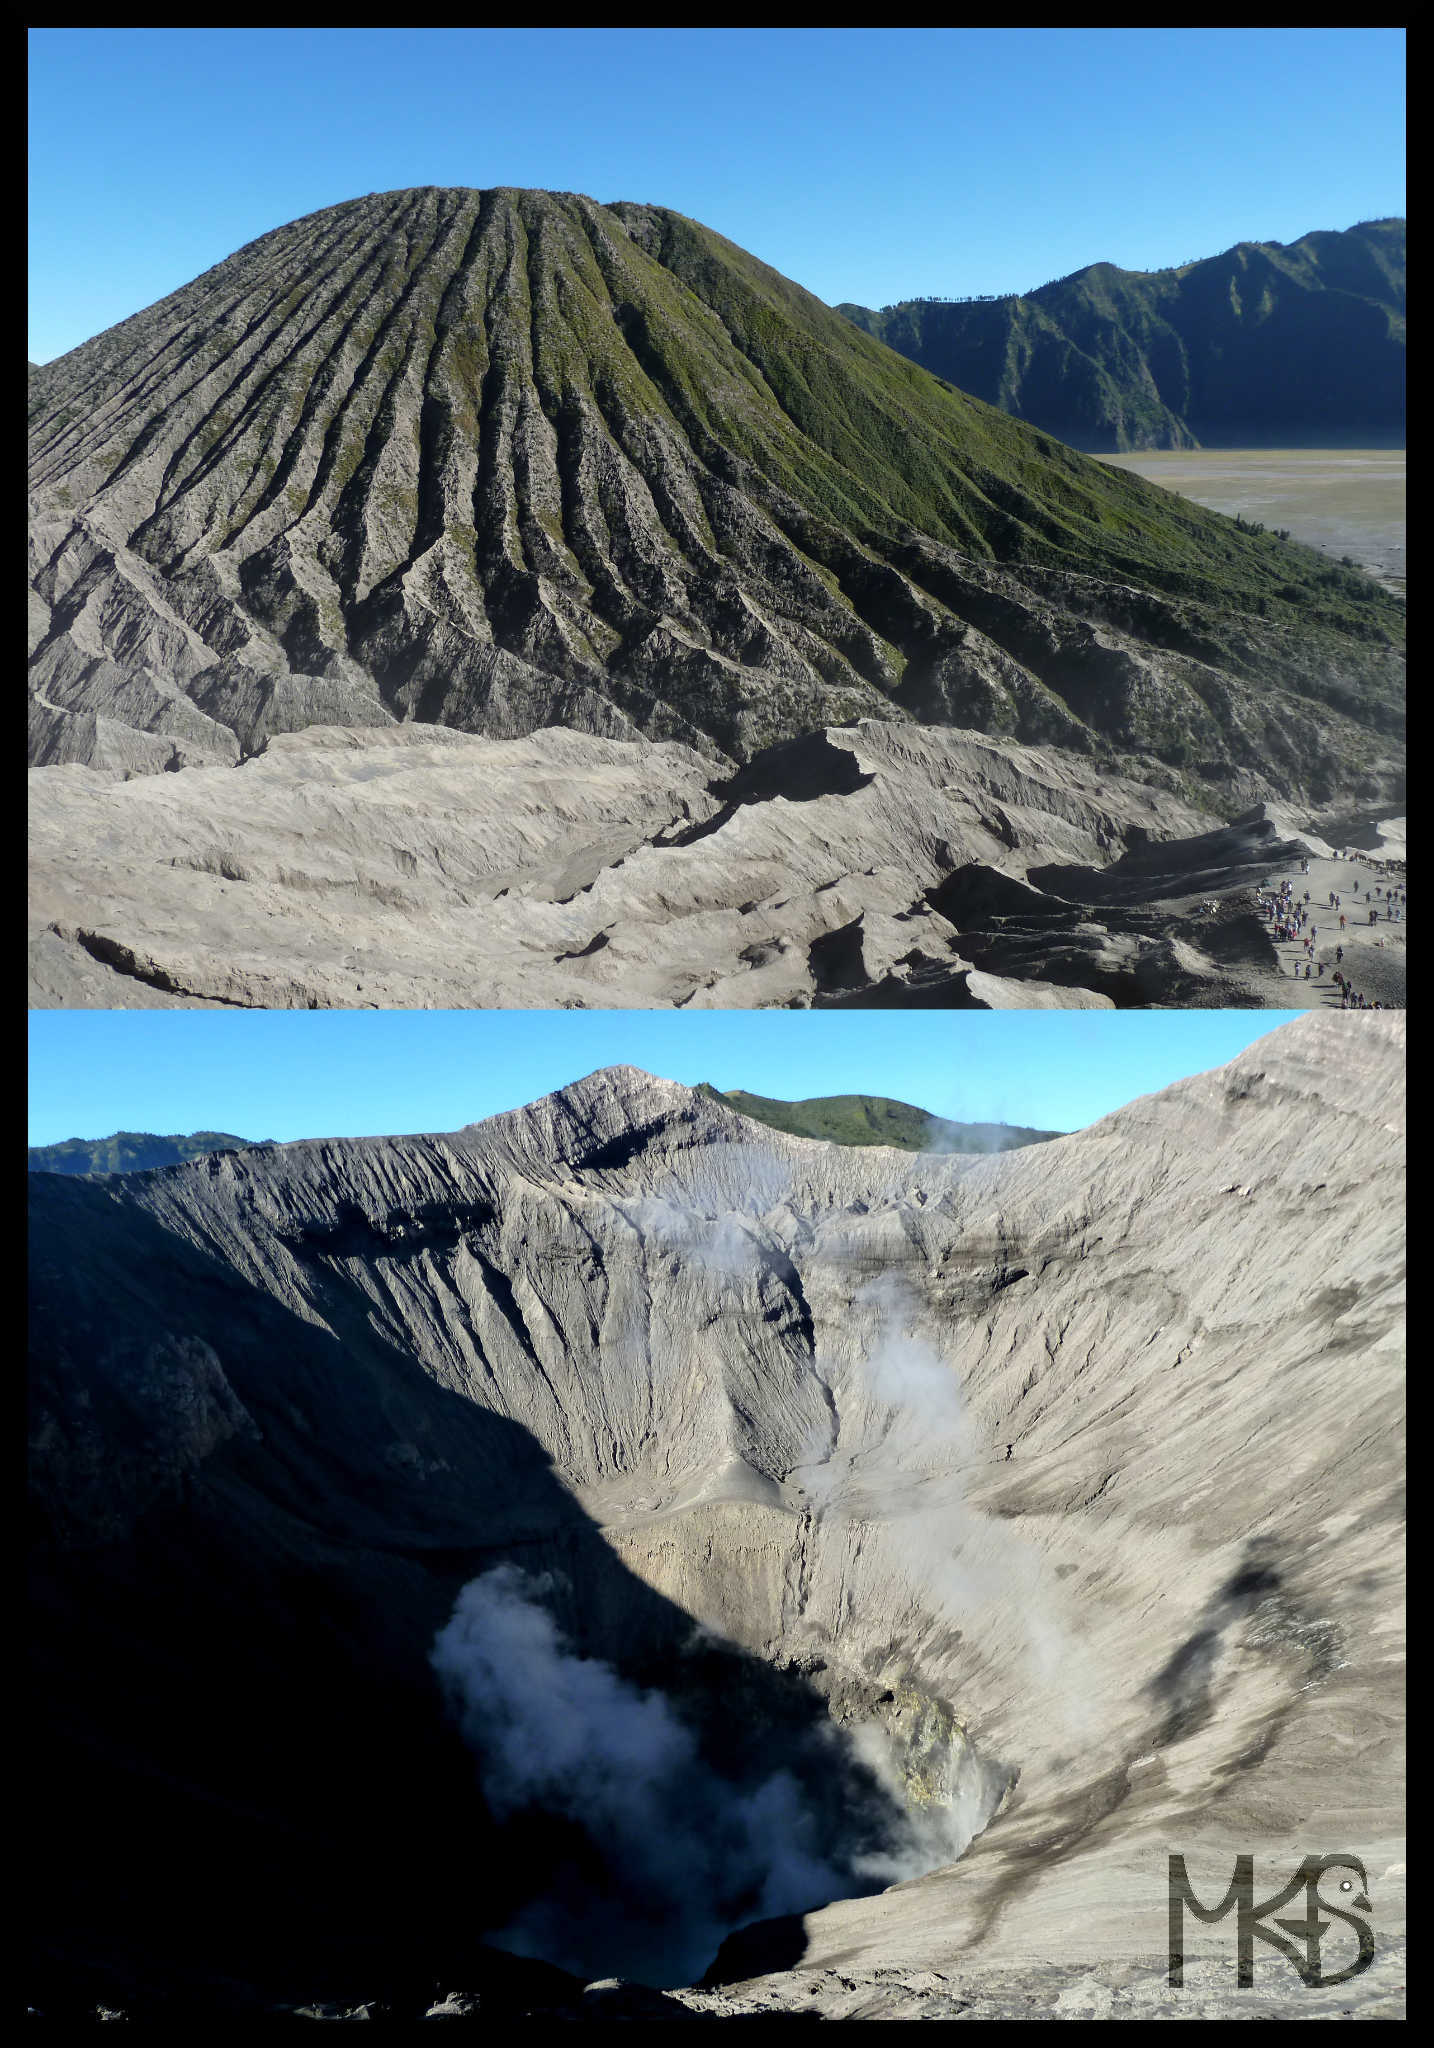 View into and from the Mount Bromo crater